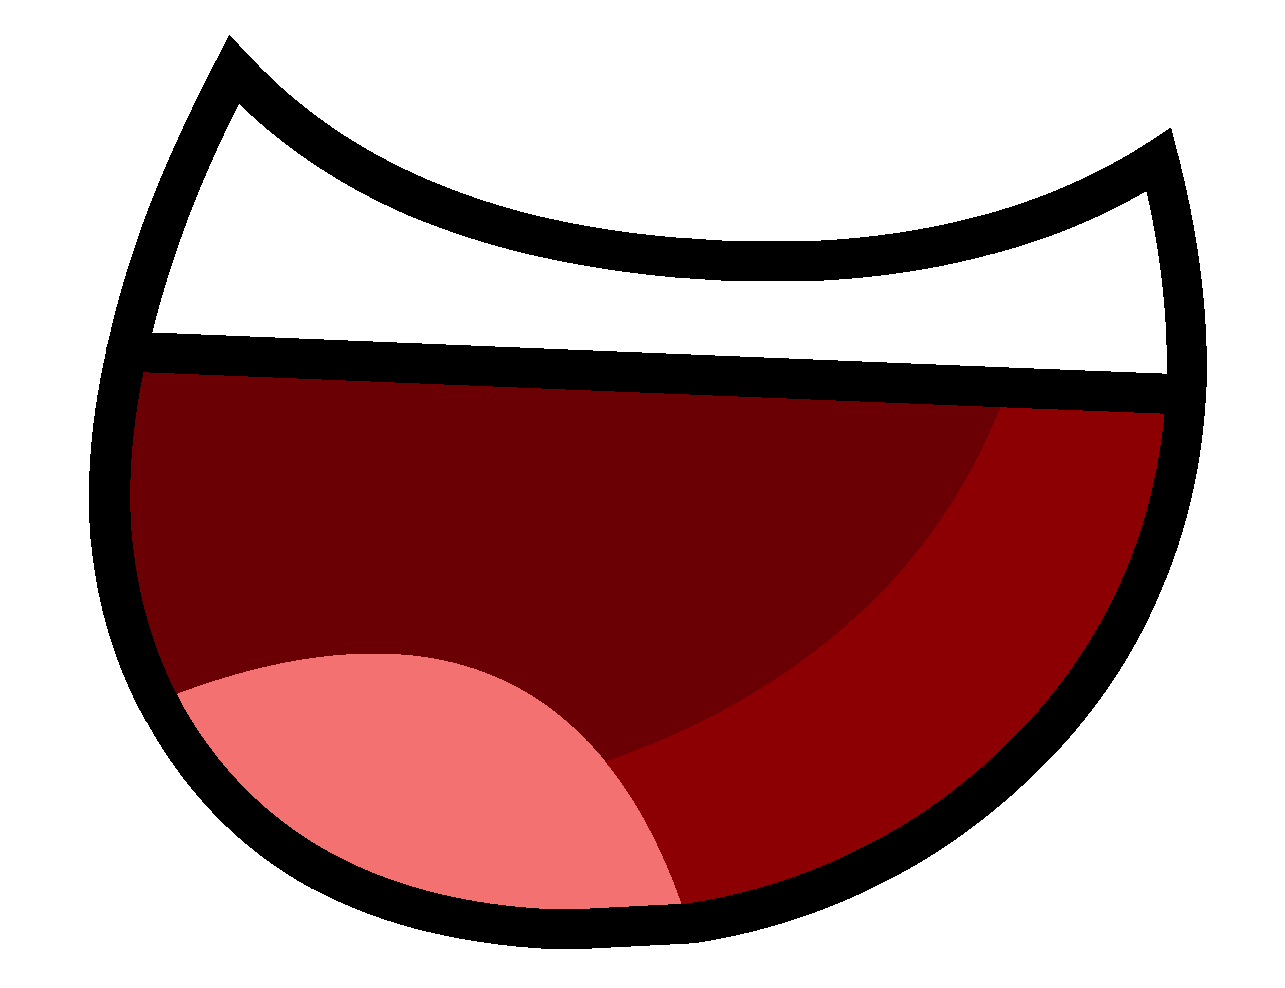 Smile Lips Clipart - Smile Li